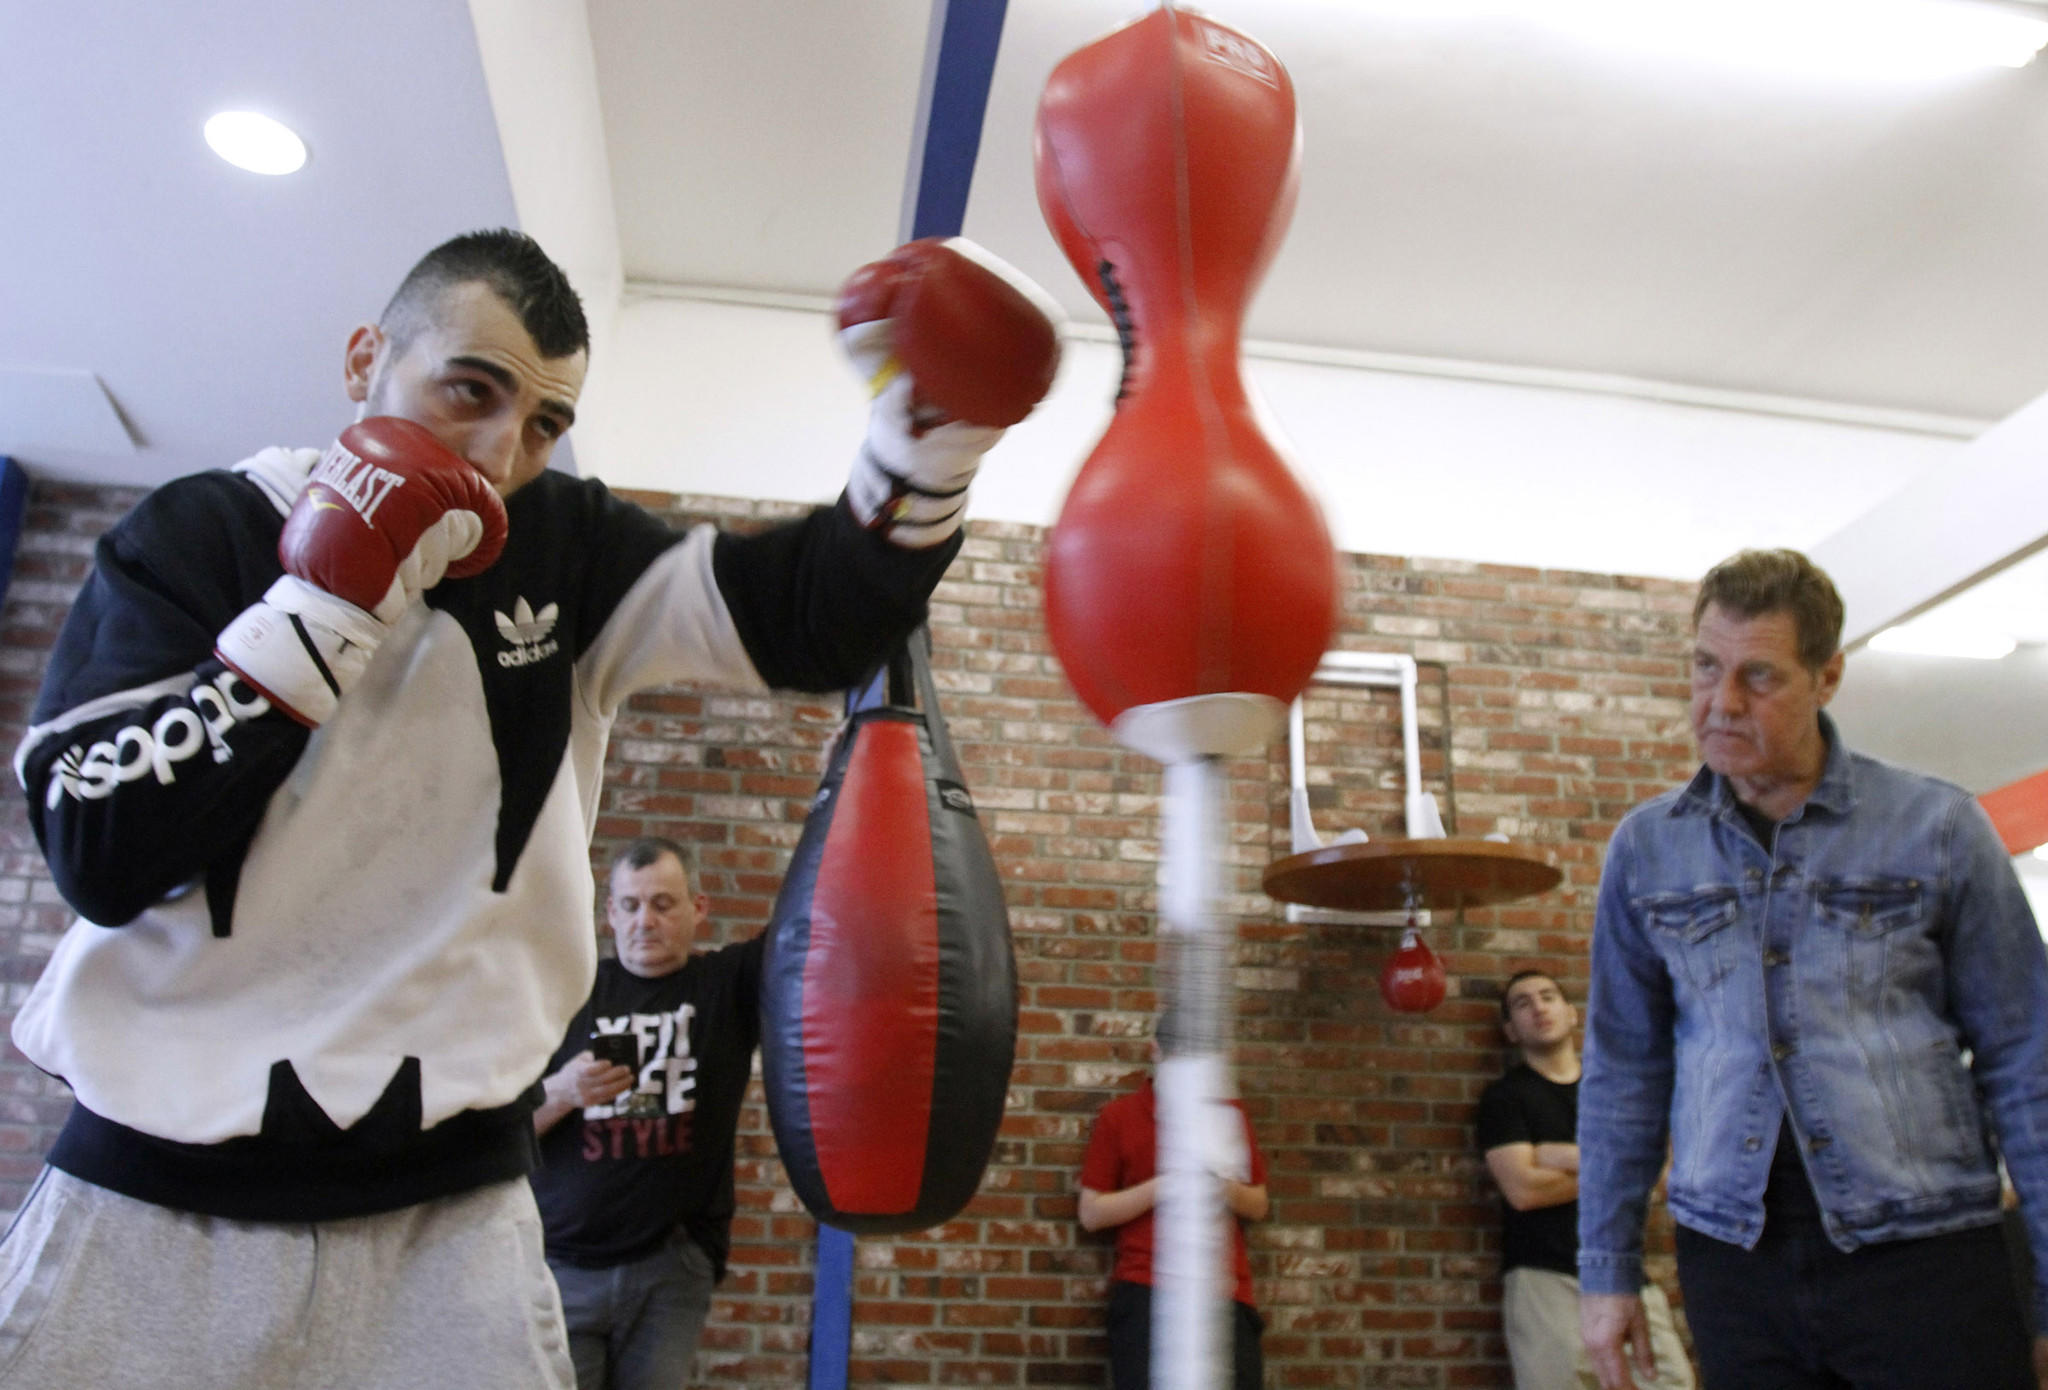 With trainer Joe Goosen keeping a close watch at right, boxer Vanes Martirosyan trains at Ten Goose Boxing gym in Van Nuys on Tuesday, March 11, 2014 as he prepares for an upcoming fight.